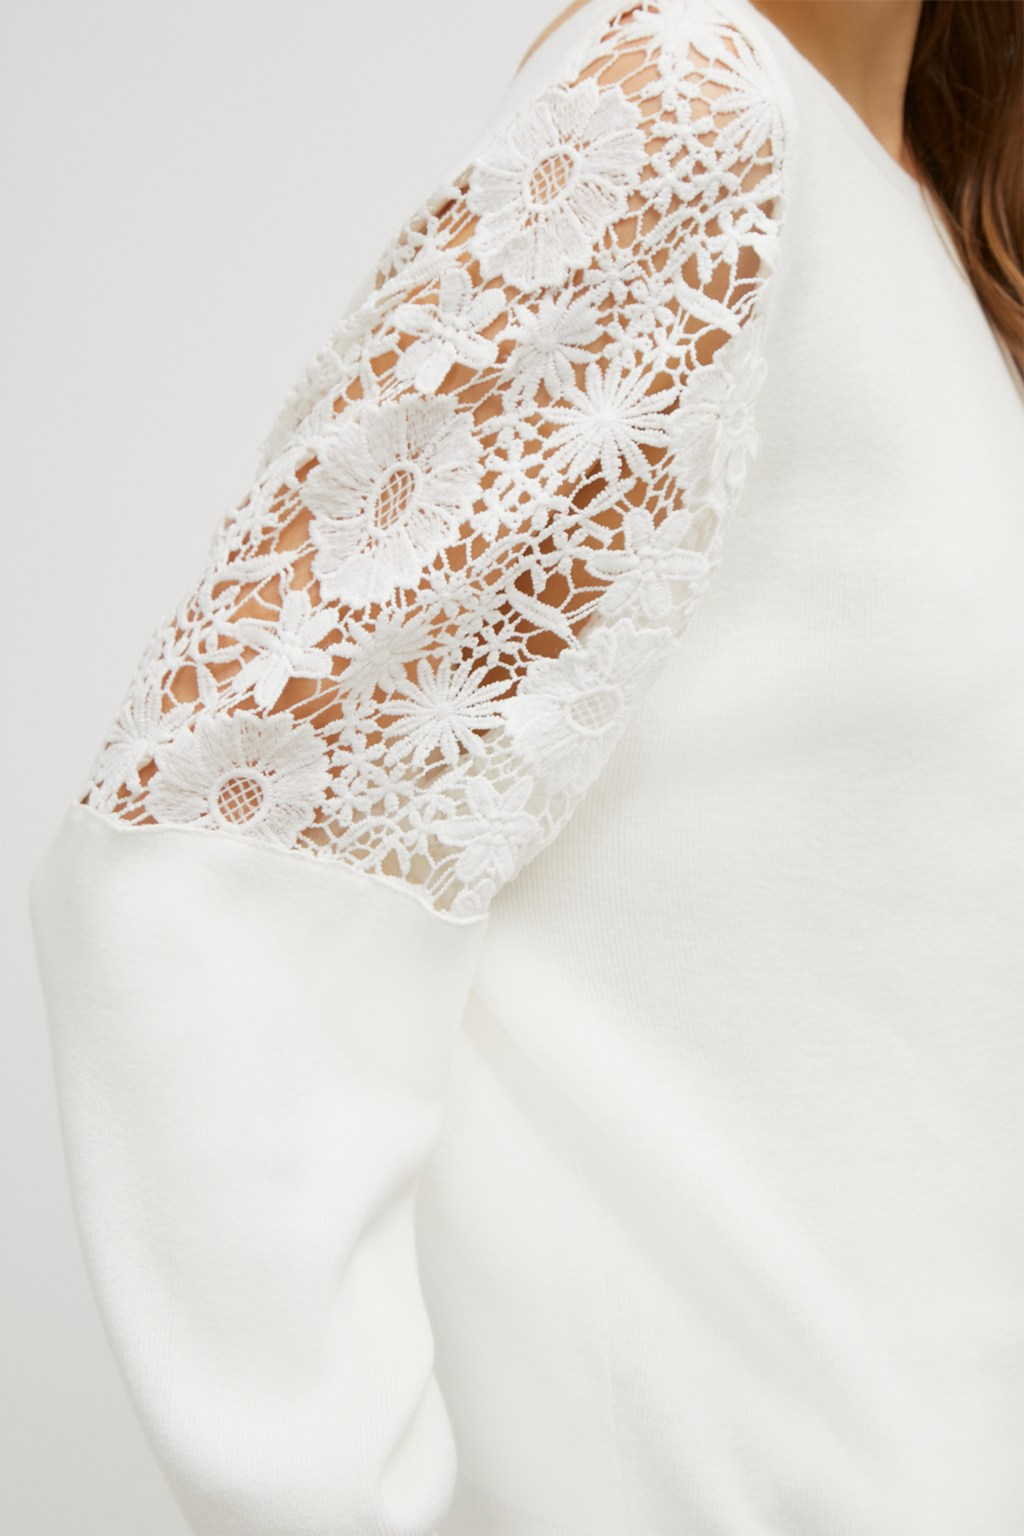 bd13ecf6894 ... Ortic Reversible V Neck Lace Sweater. loading images.